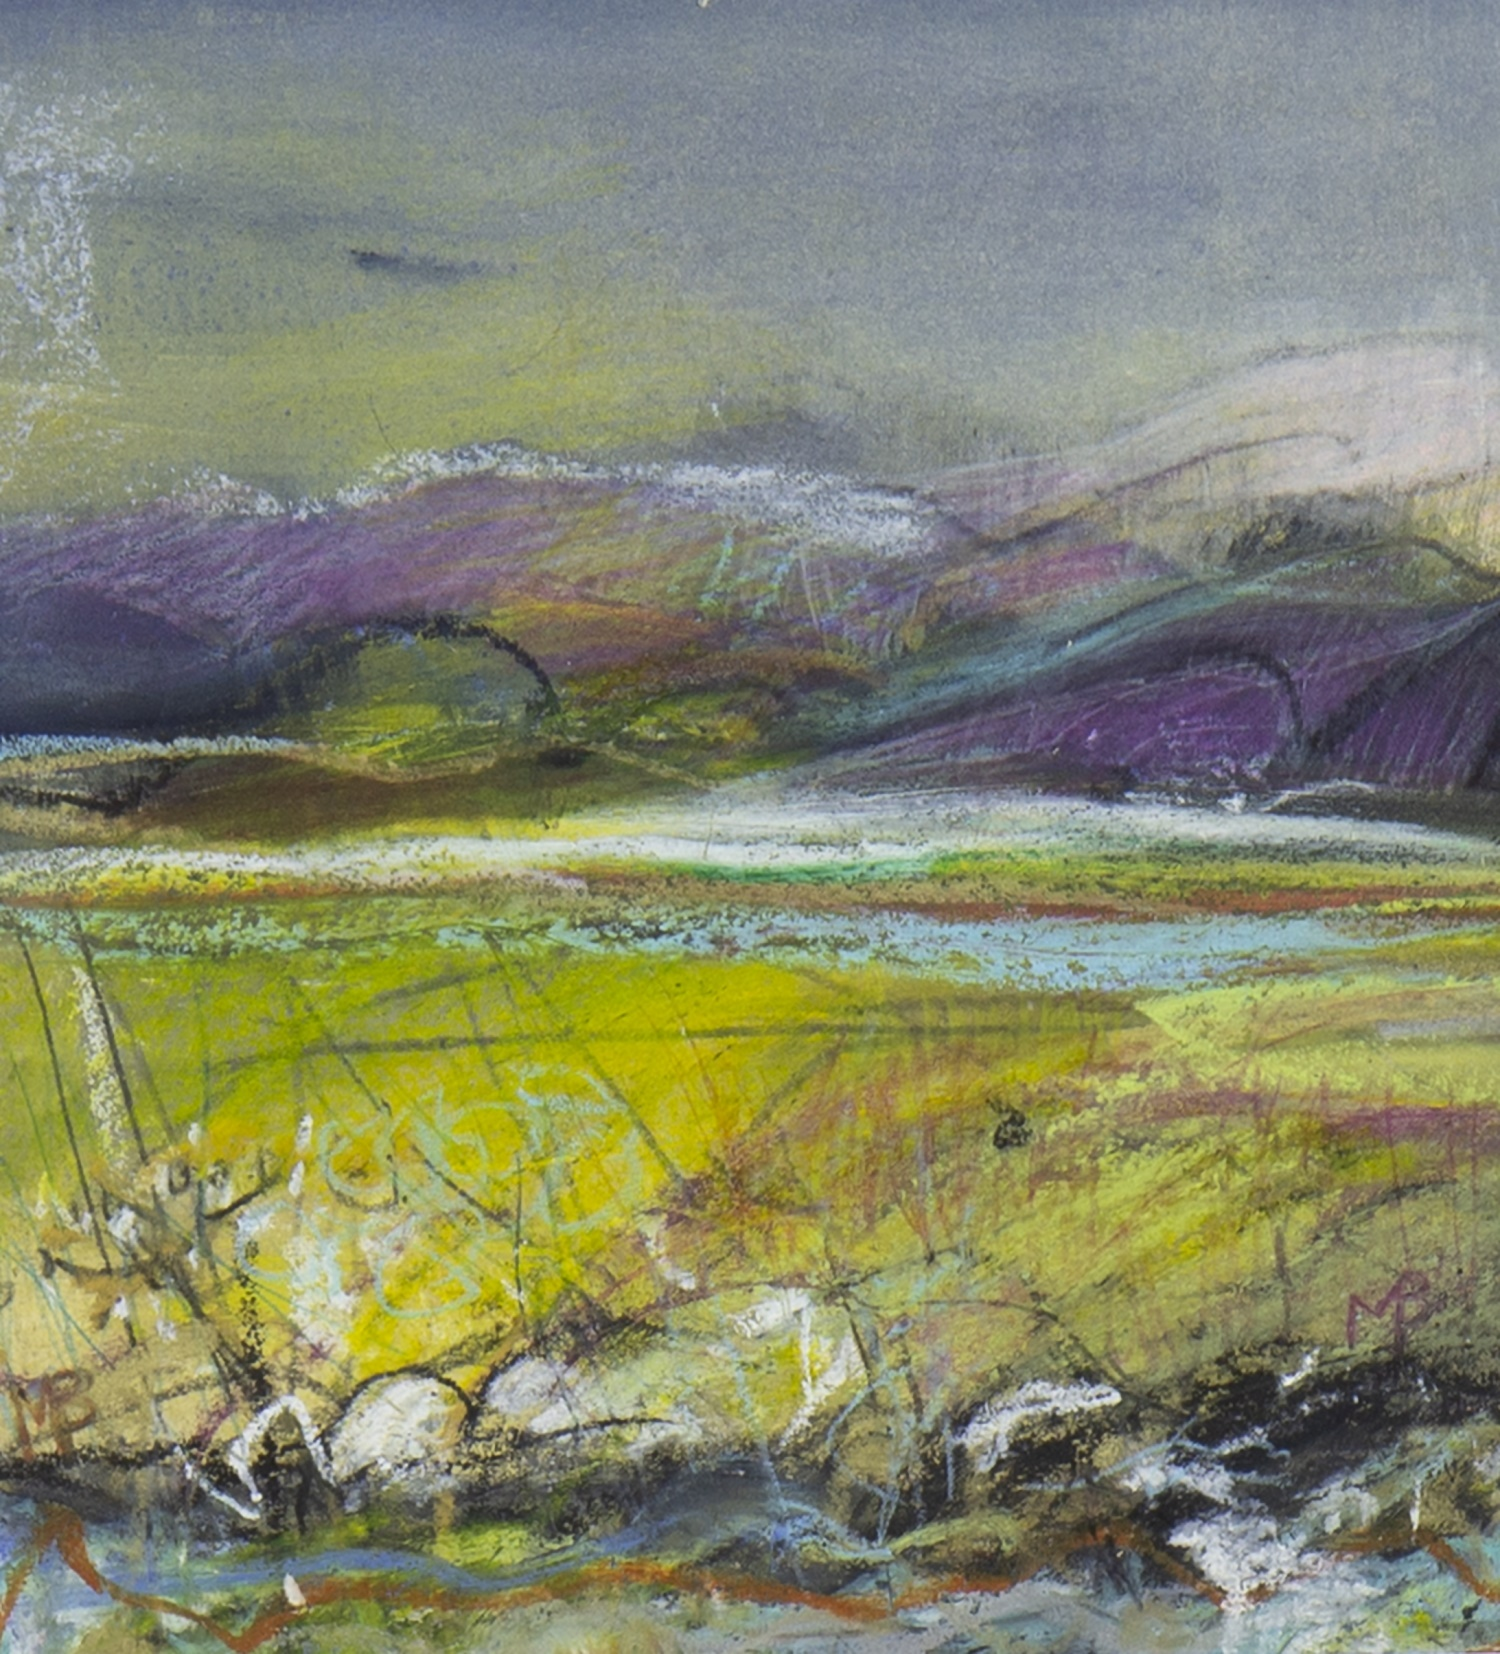 SUNLIT FIELDS, A MIXED MEDIA BY MAY BYRNE - Image 2 of 2